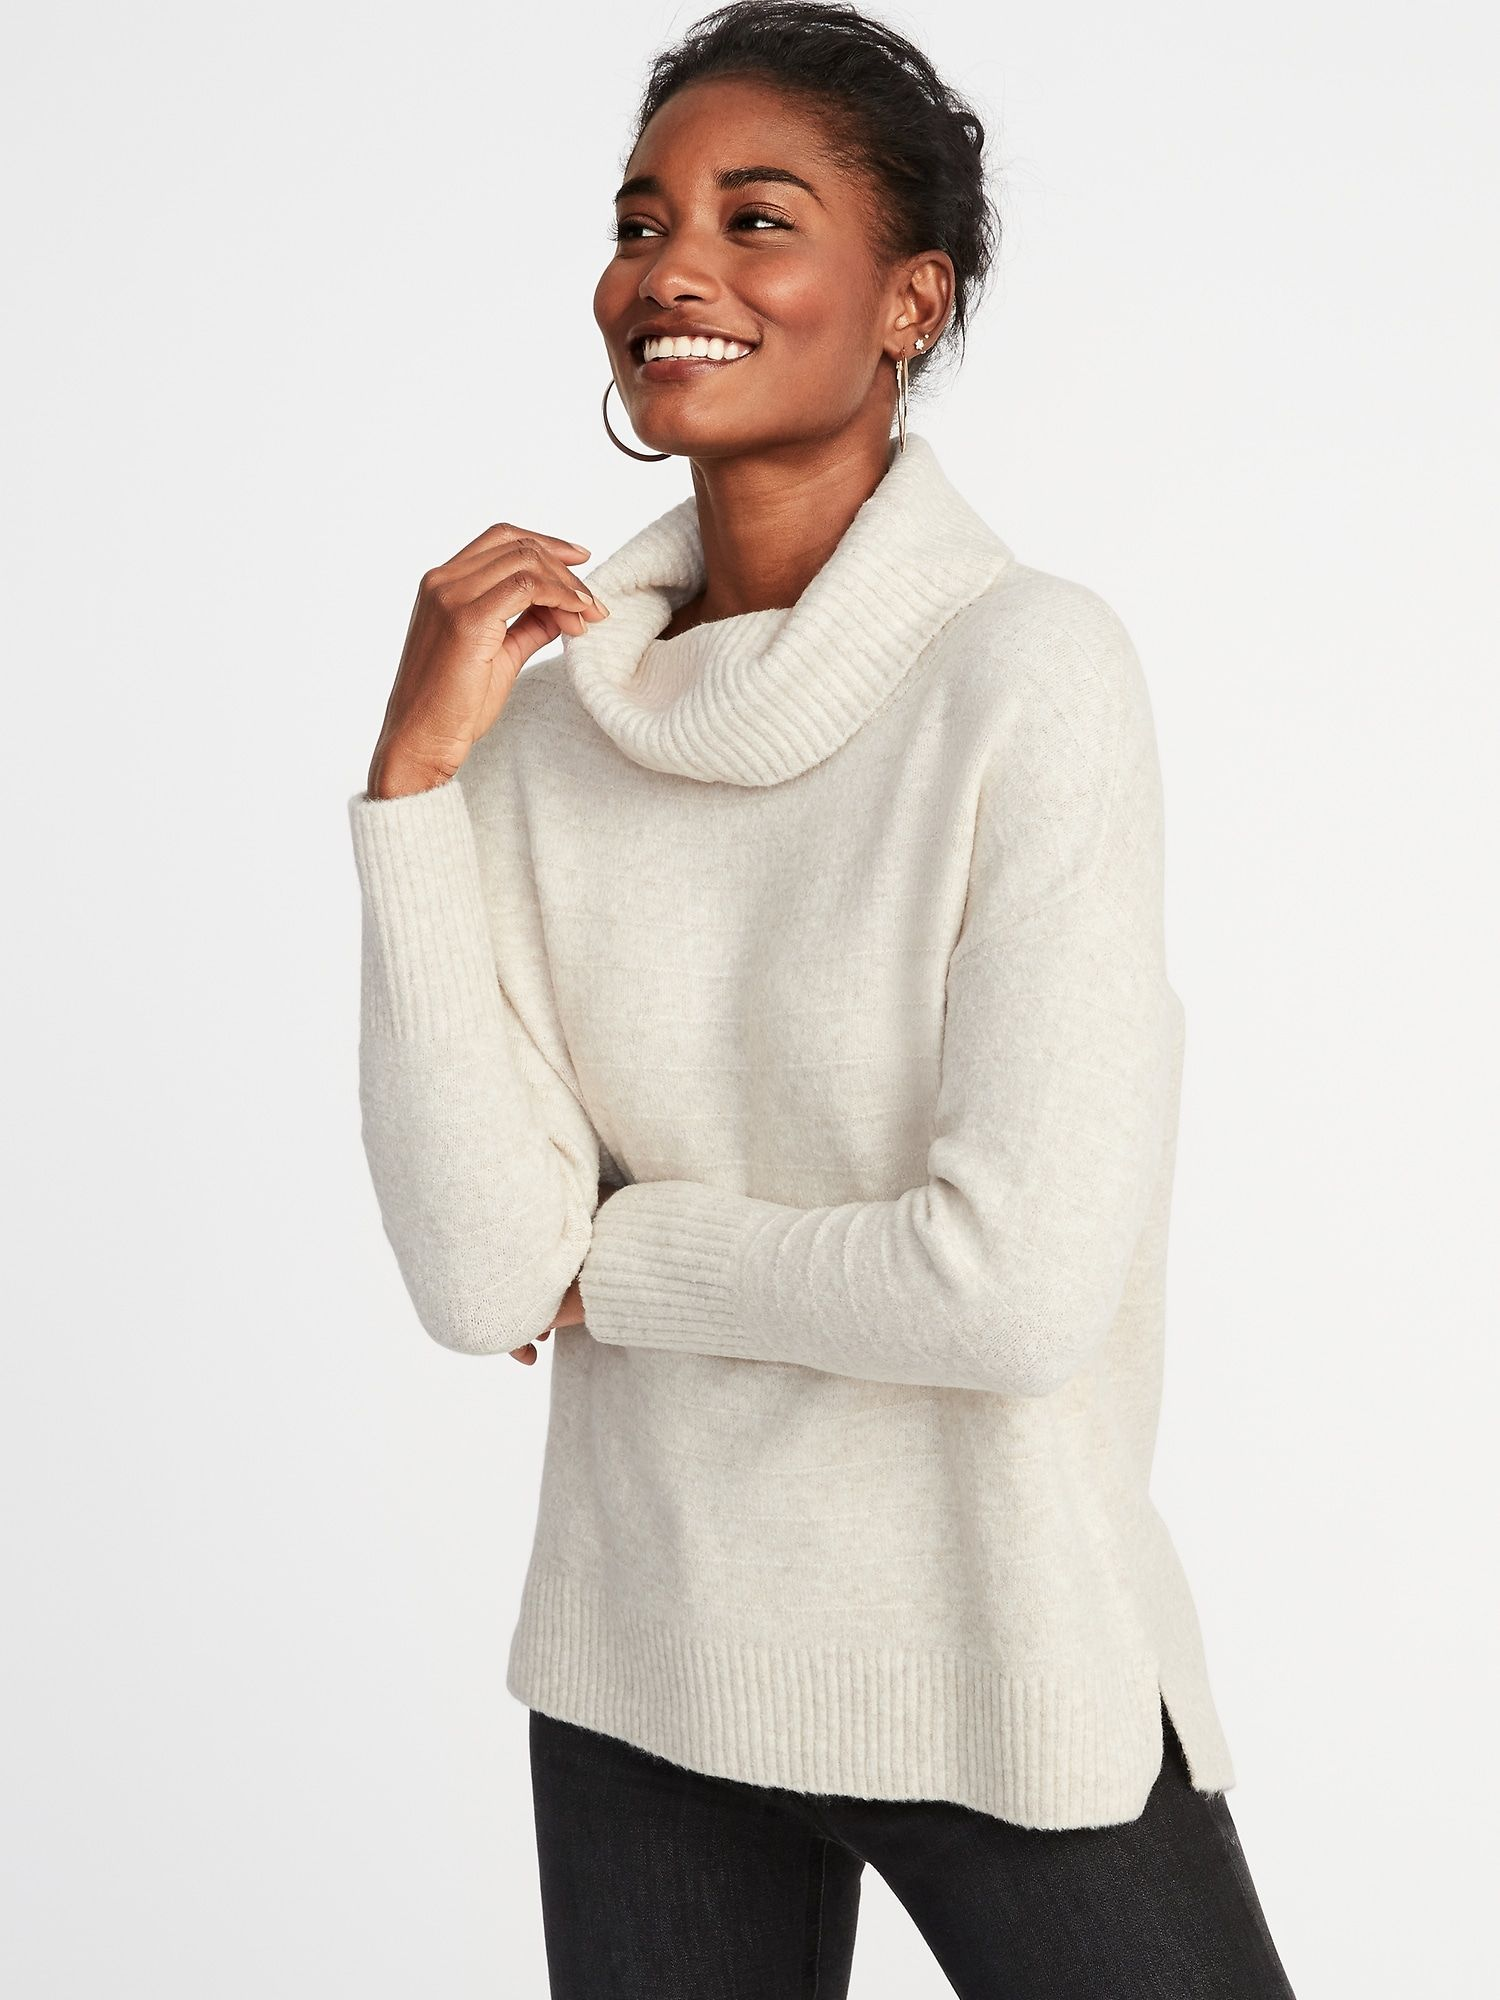 Slouchy Garter-Stitch Turtleneck Sweater for Women  7df0d7025891